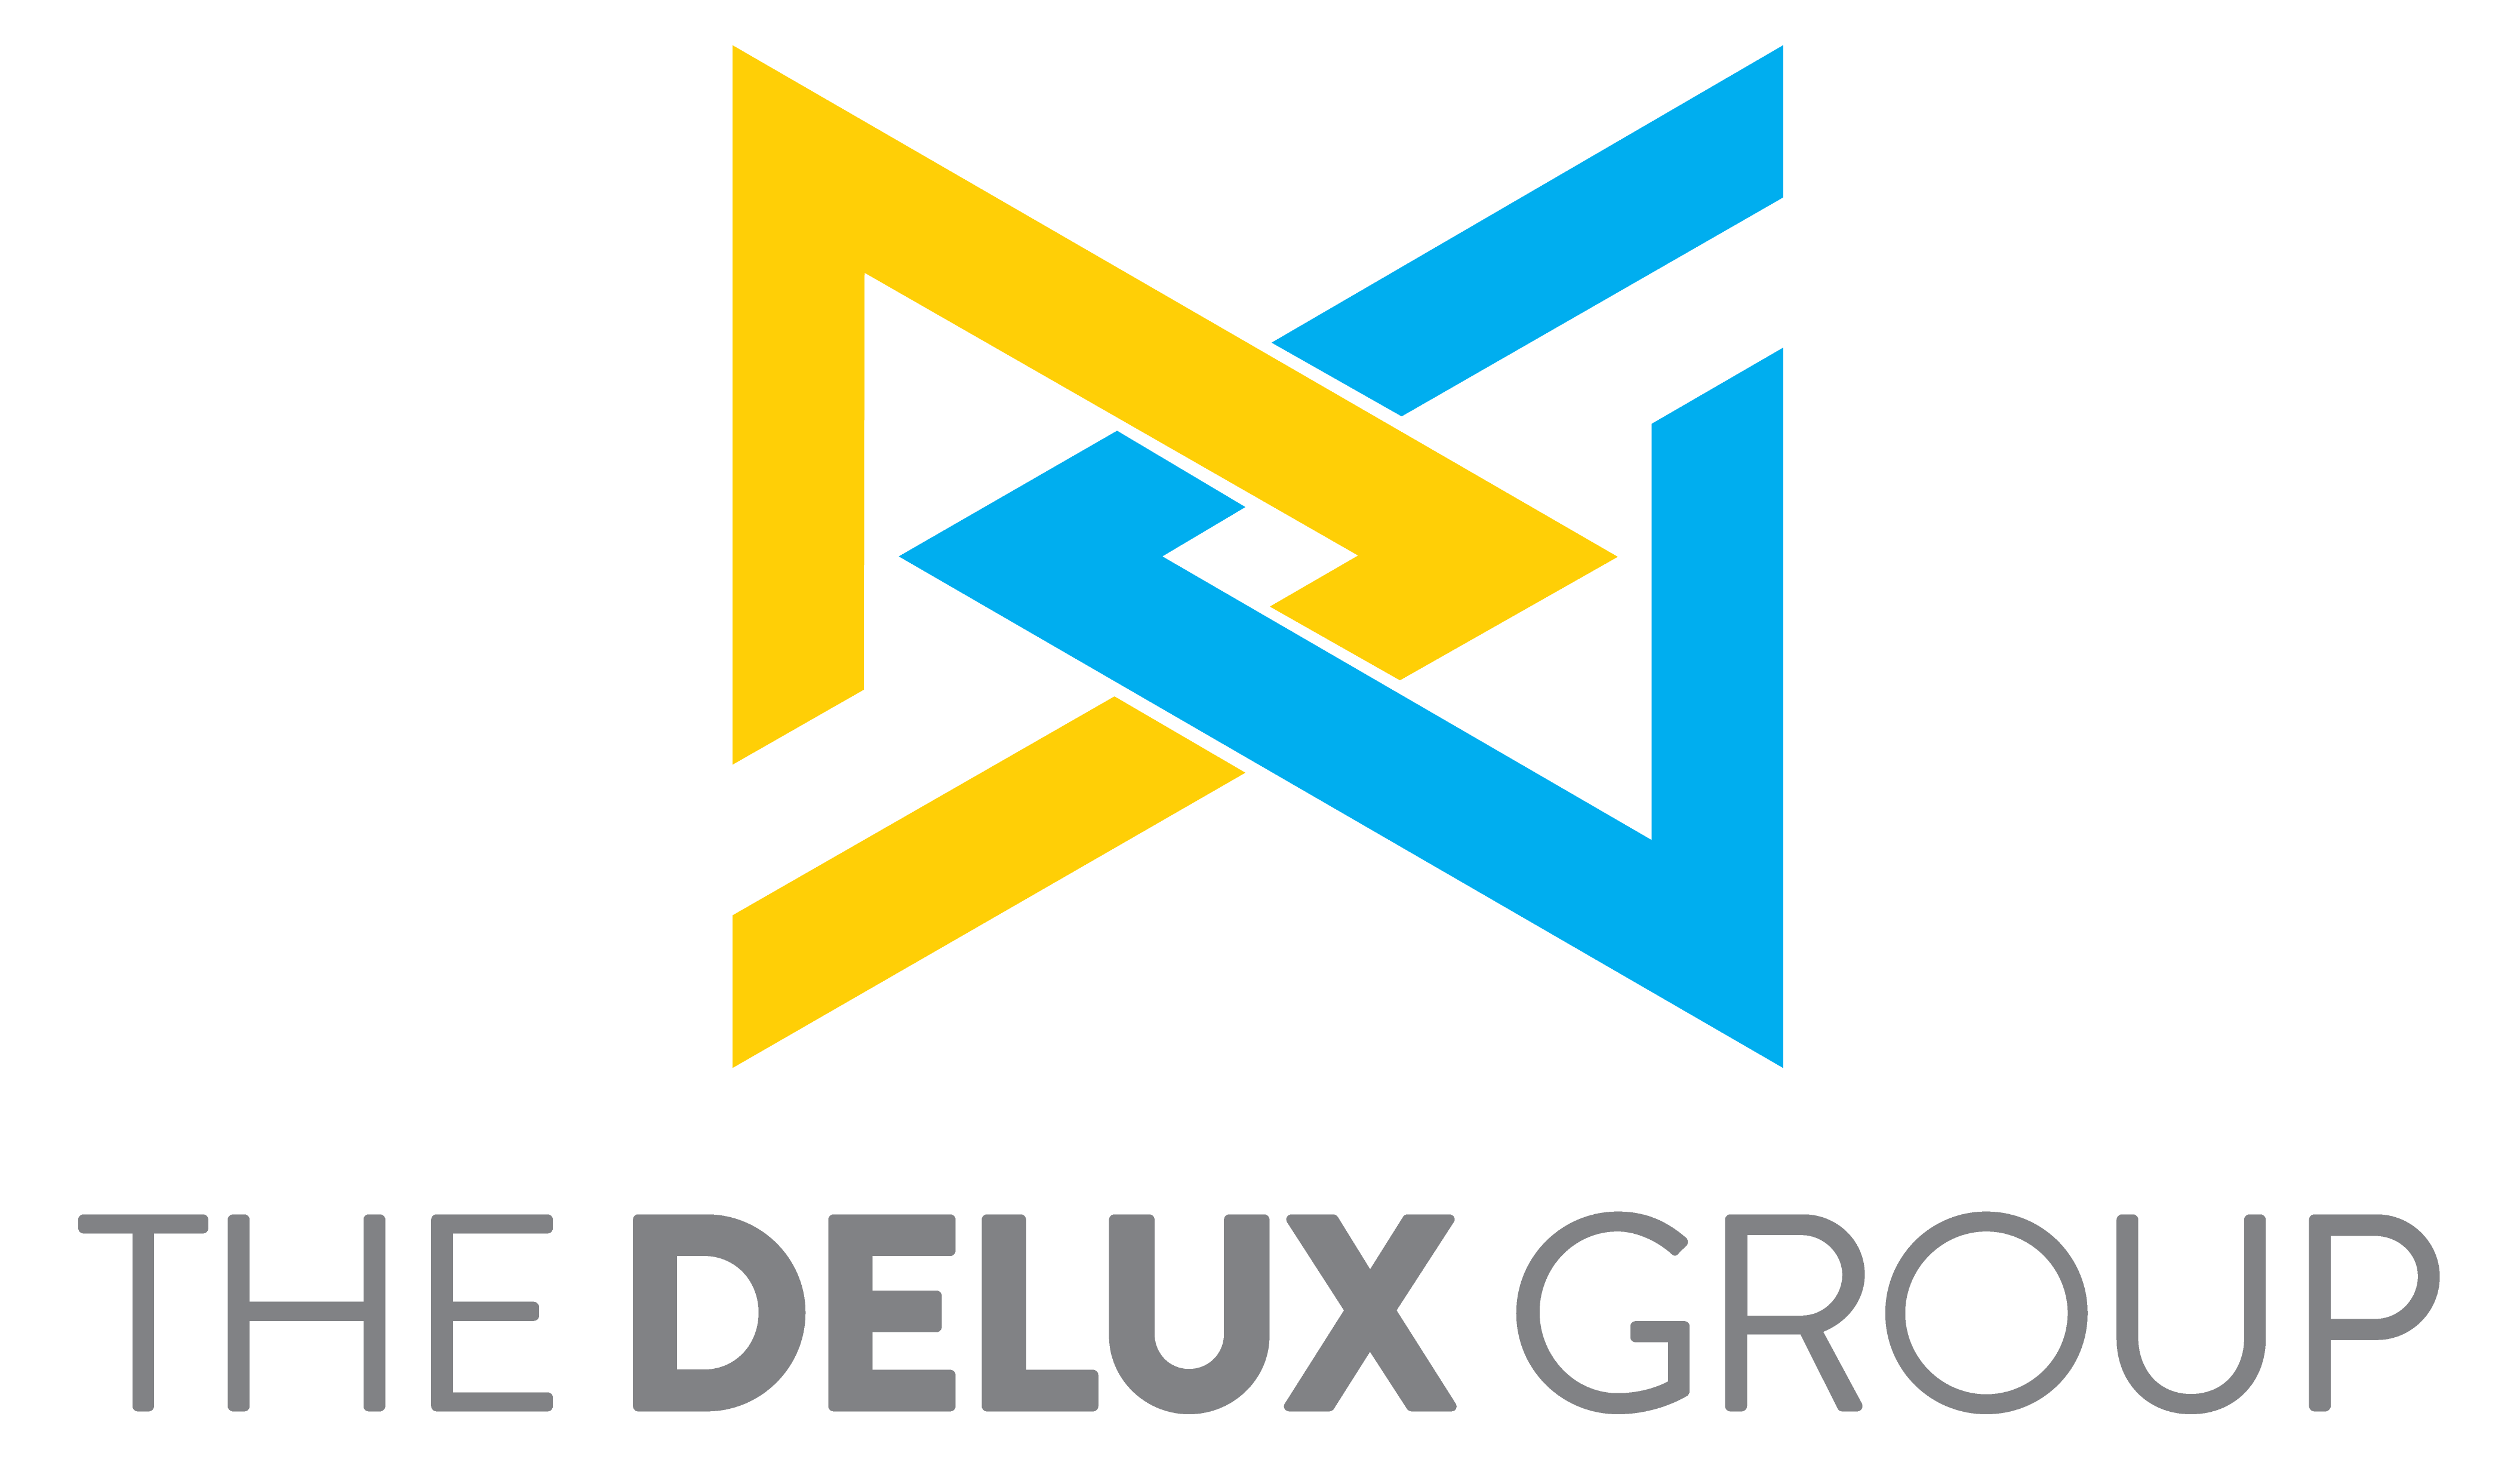 Thedeluxgroup